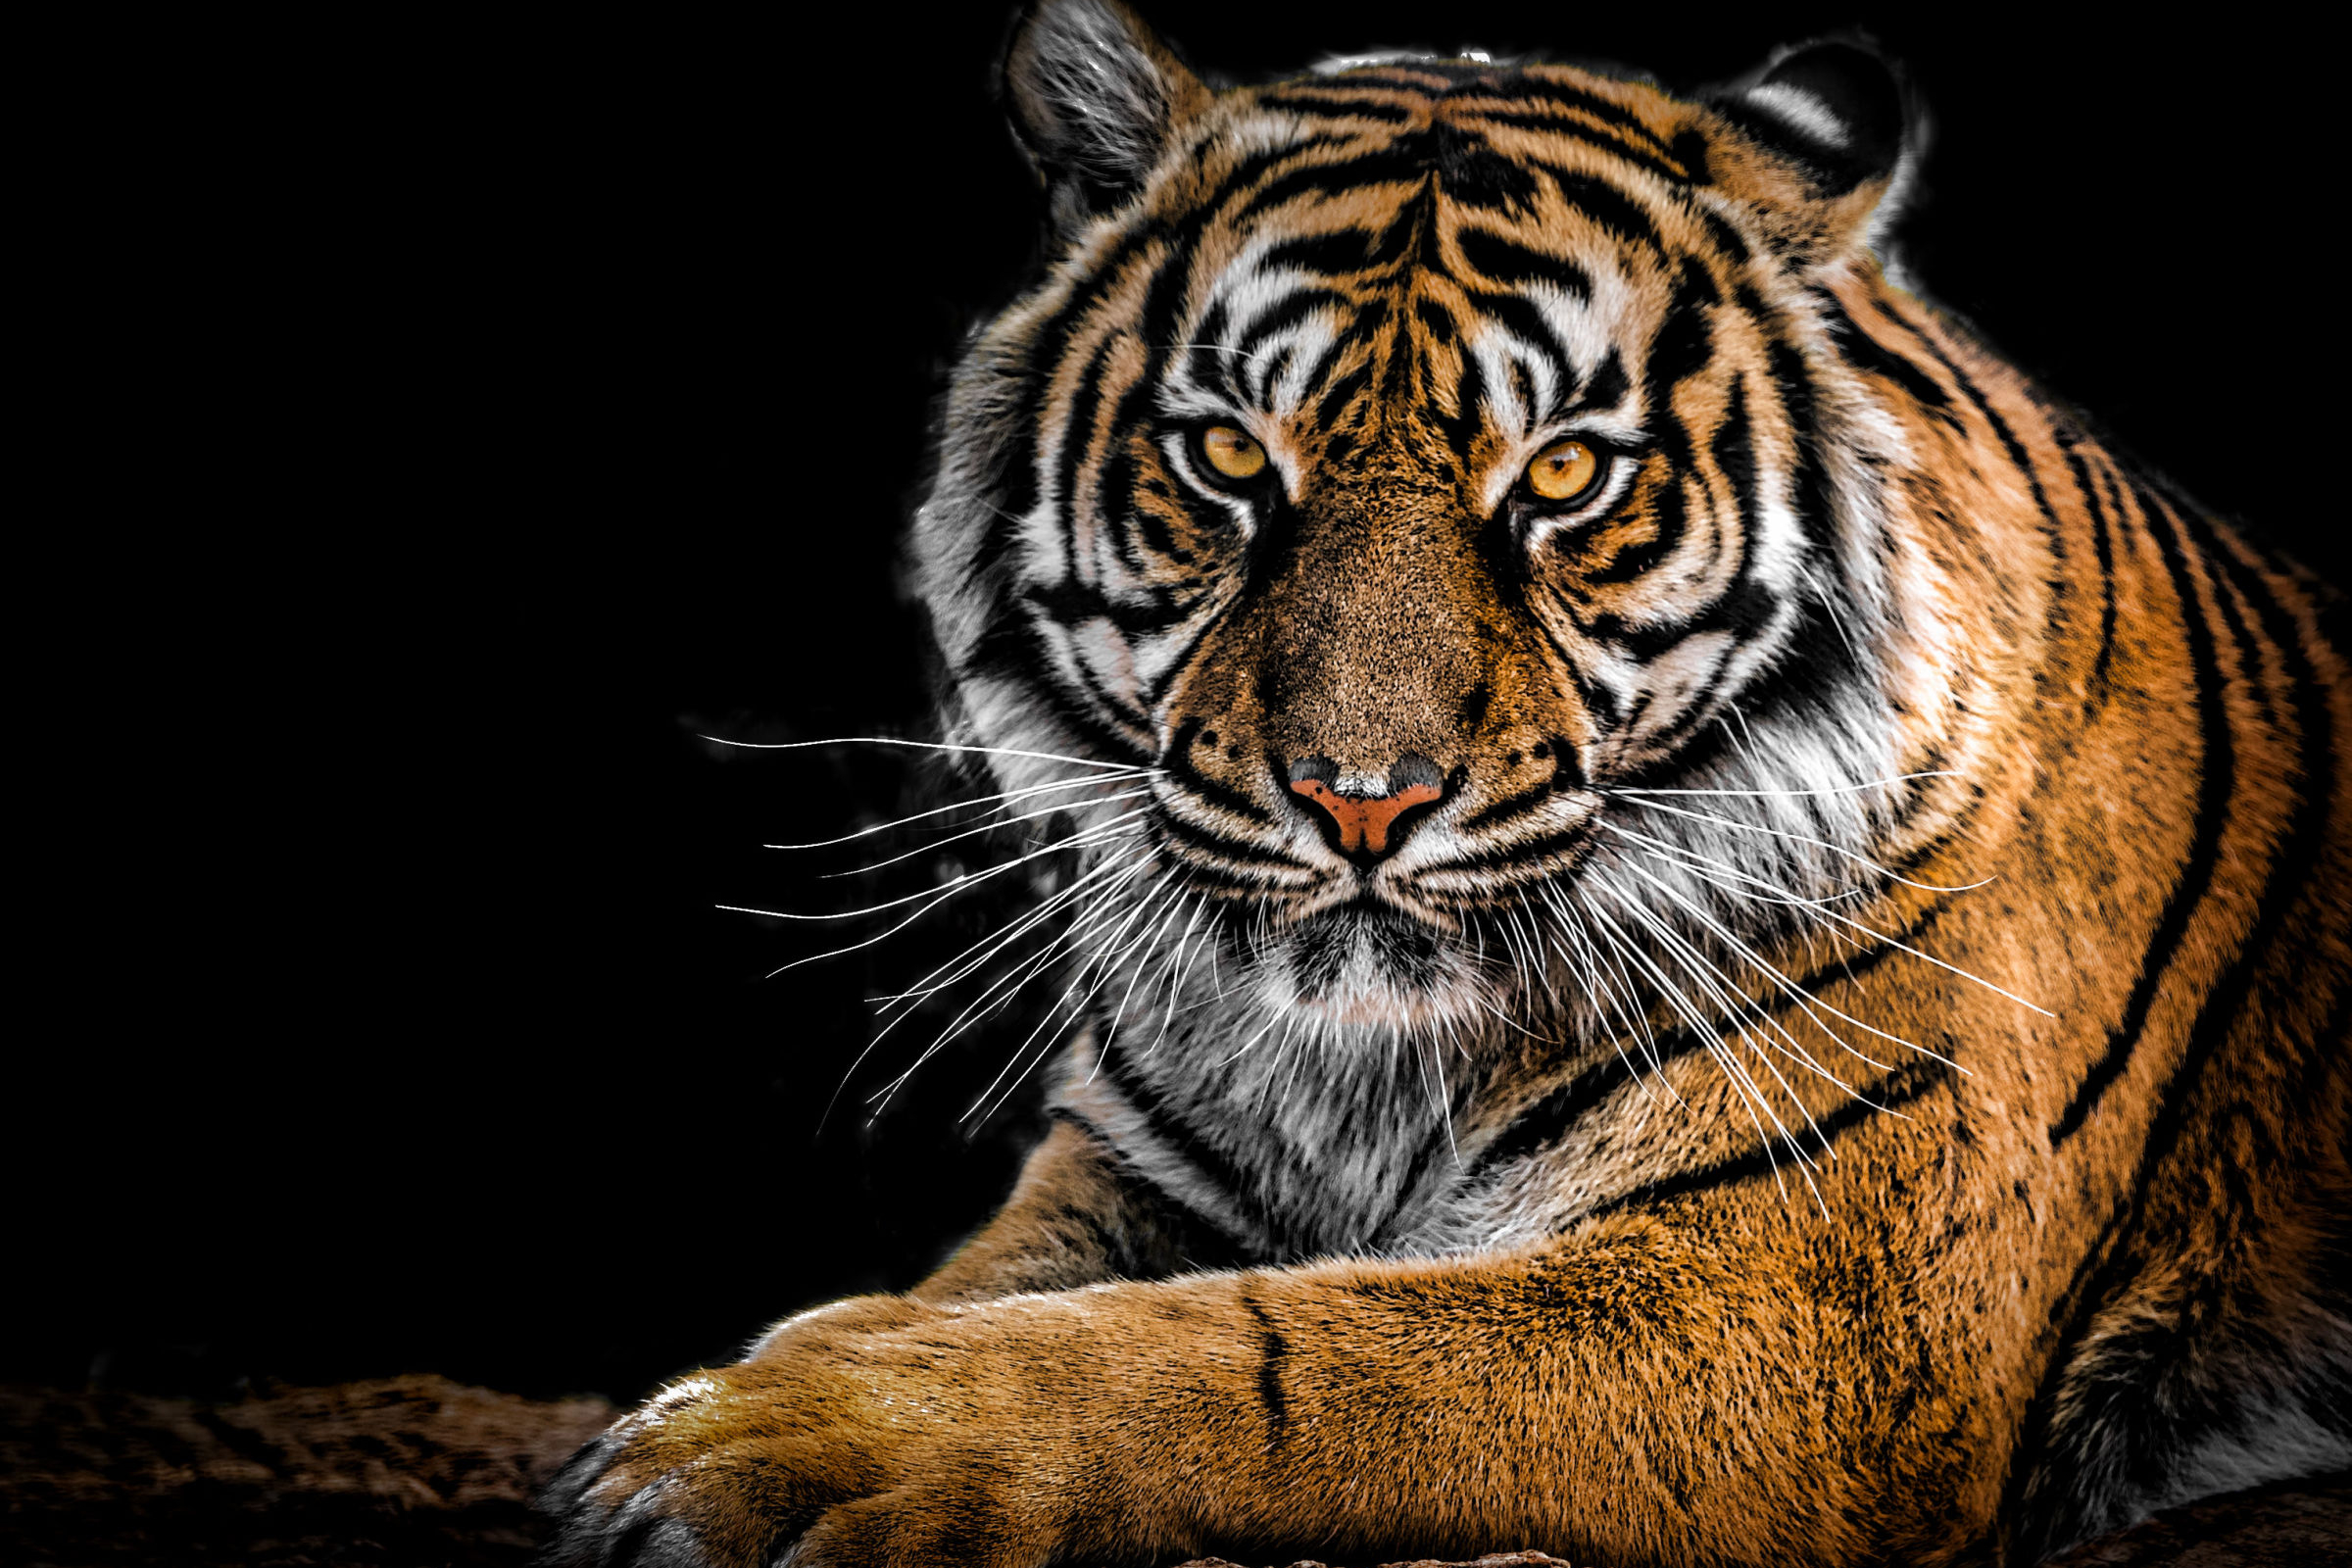 Introducing Our Latest Practice Area – Class Action Tiger Law